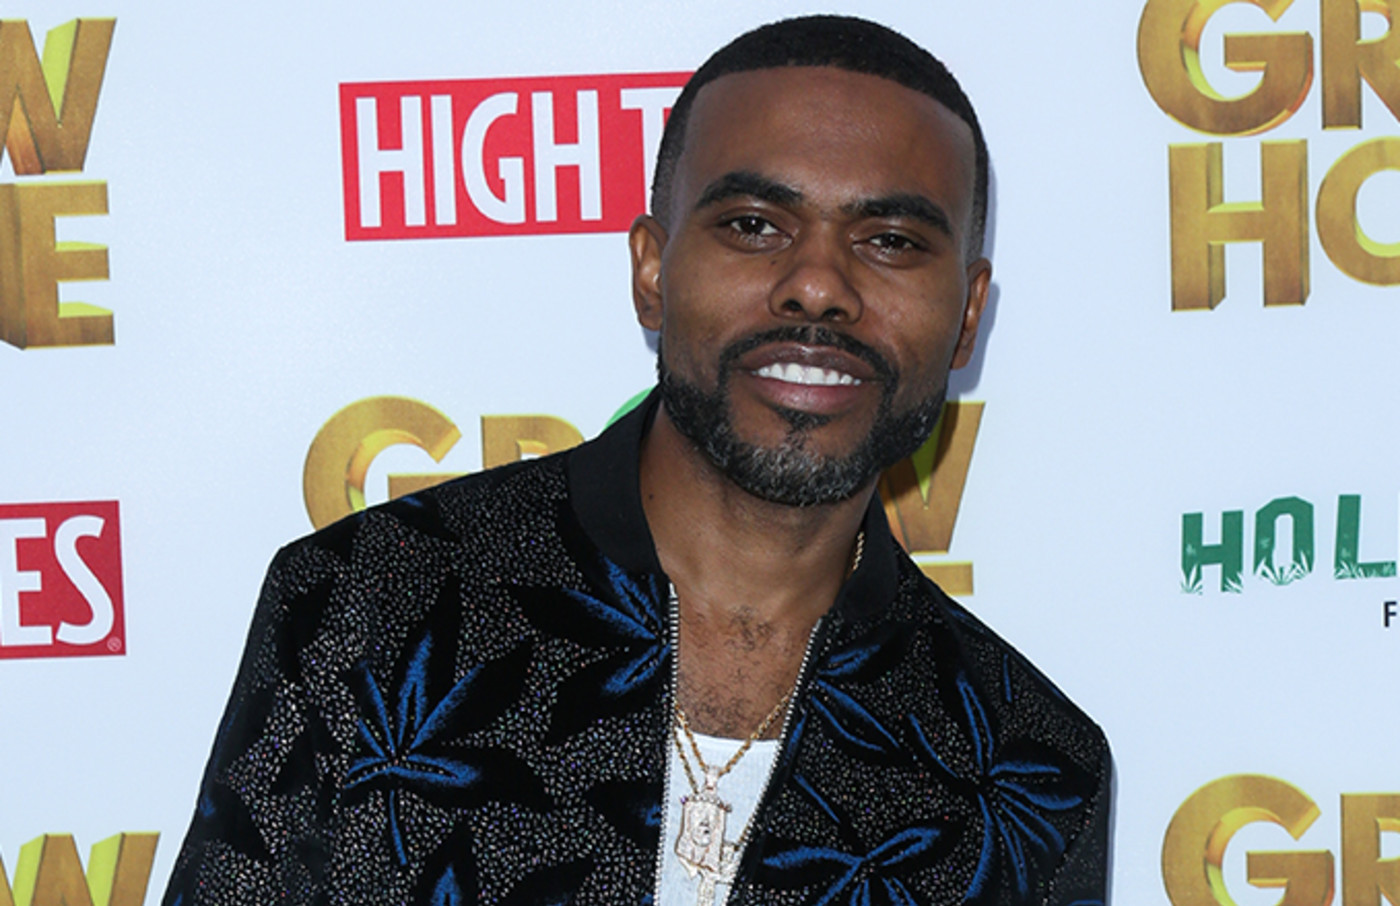 If a man is a billionaire having more than one woman isnt being greedy - Comedian, Lil Duval